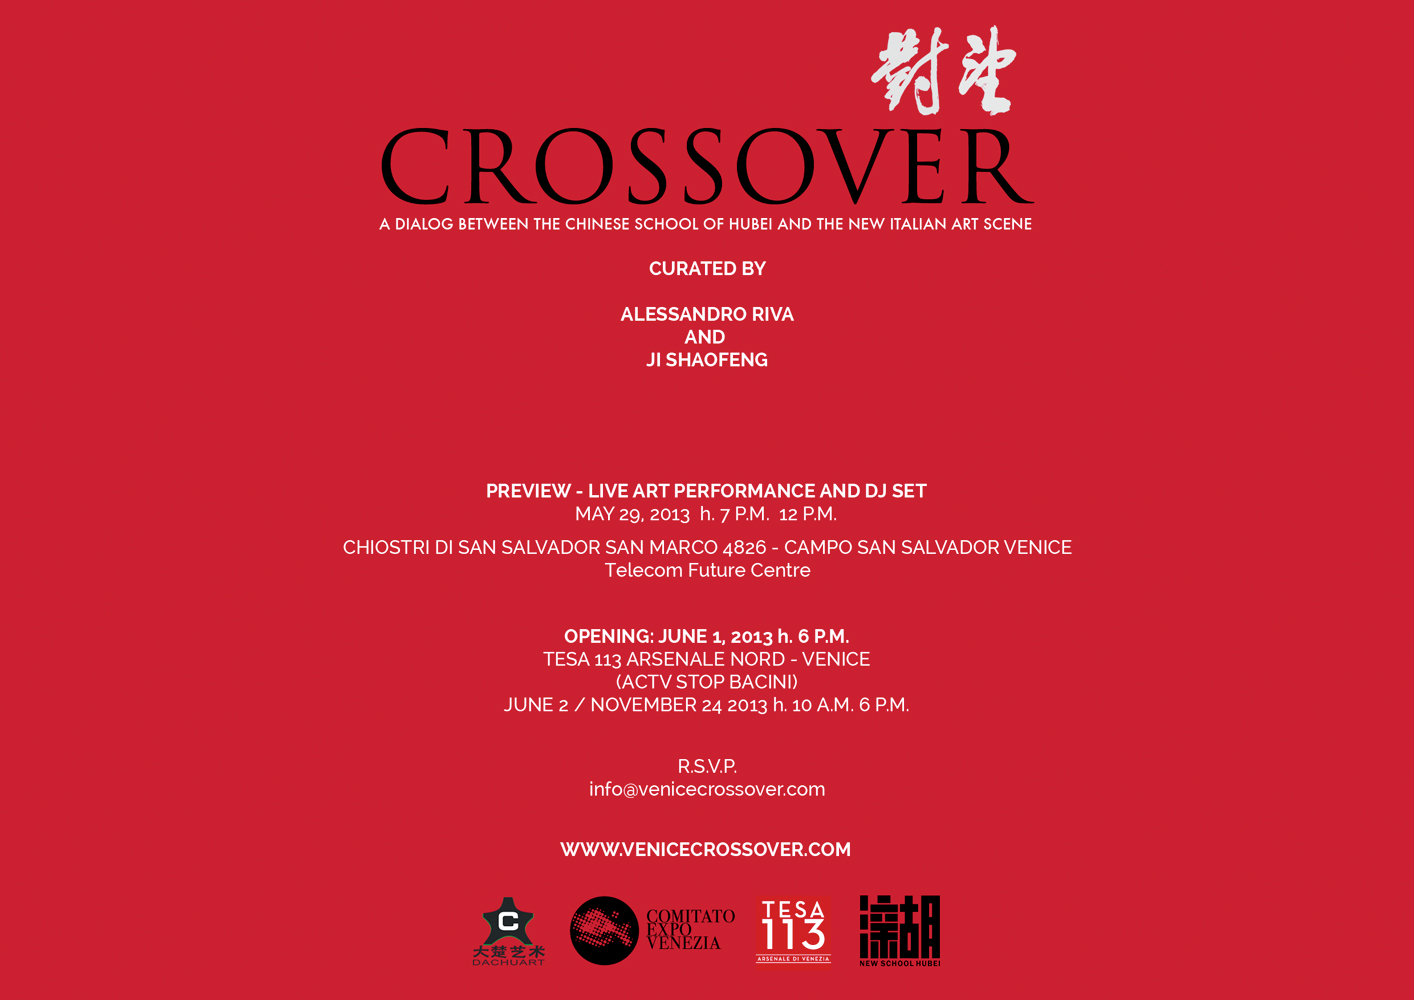 CROSSOVER, A dialog between the Chinese School of Hubei and the new Italian art scene , curated by Alessandro Riva and Ji Shao Feng, Venice Biennale, 2013